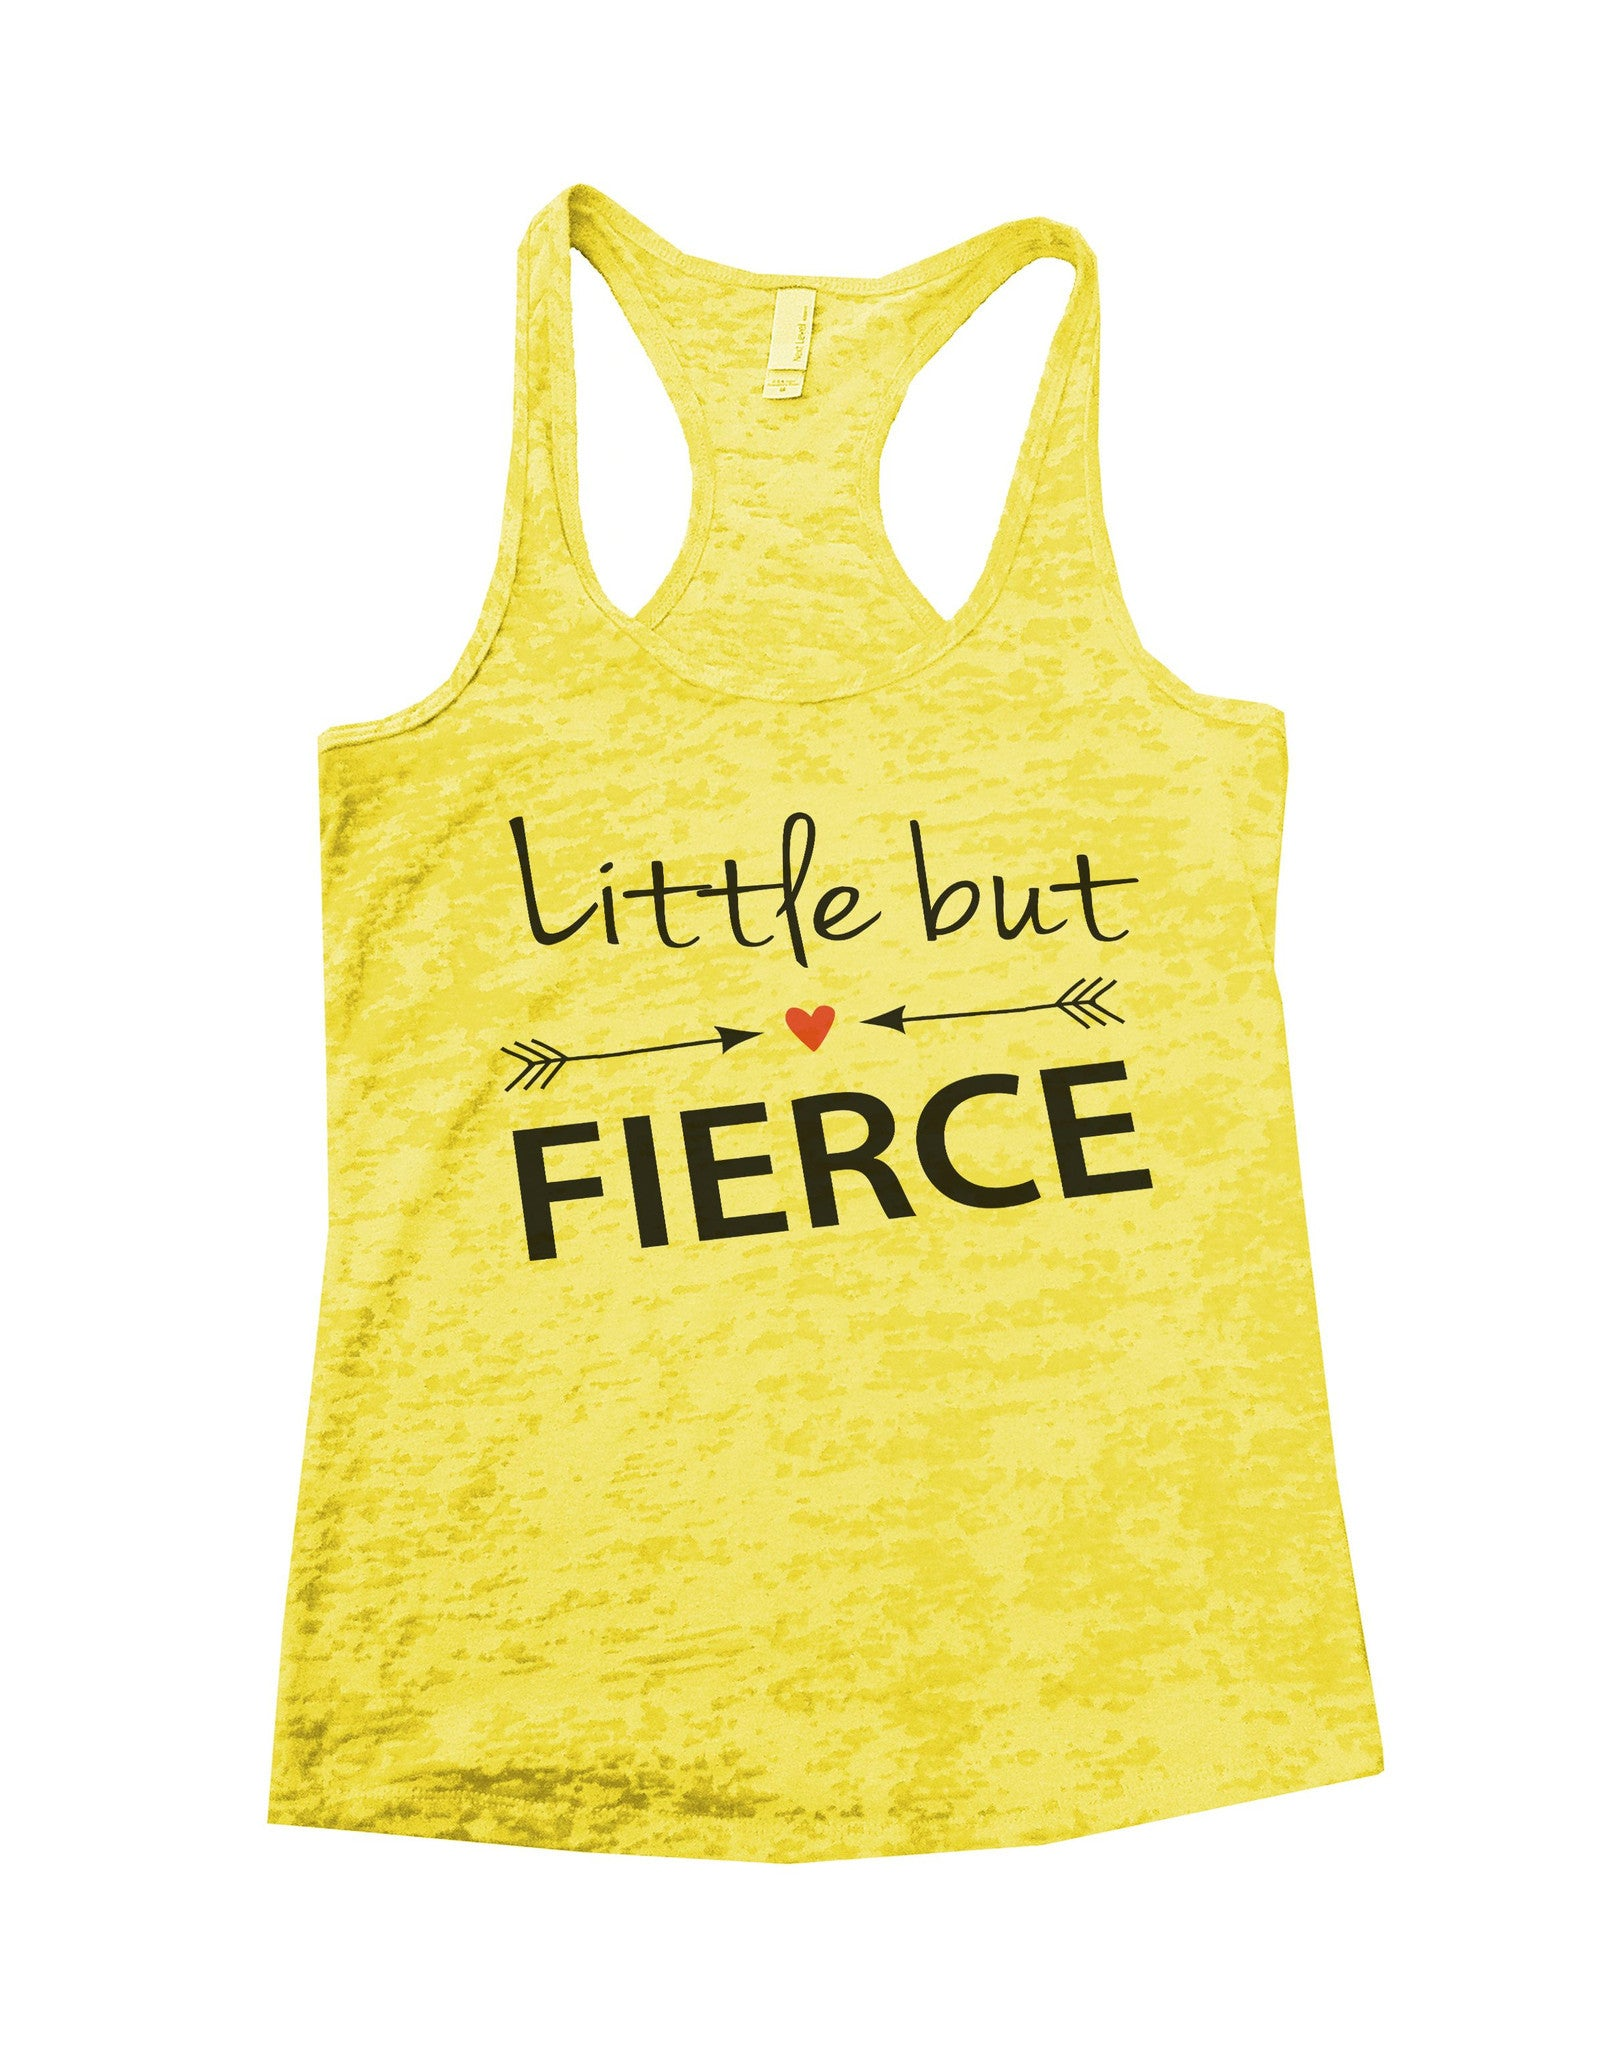 Little But Fierce Burnout Tank Top By BurnoutTankTops.com - 787 - Funny Shirts Tank Tops Burnouts and Triblends  - 7